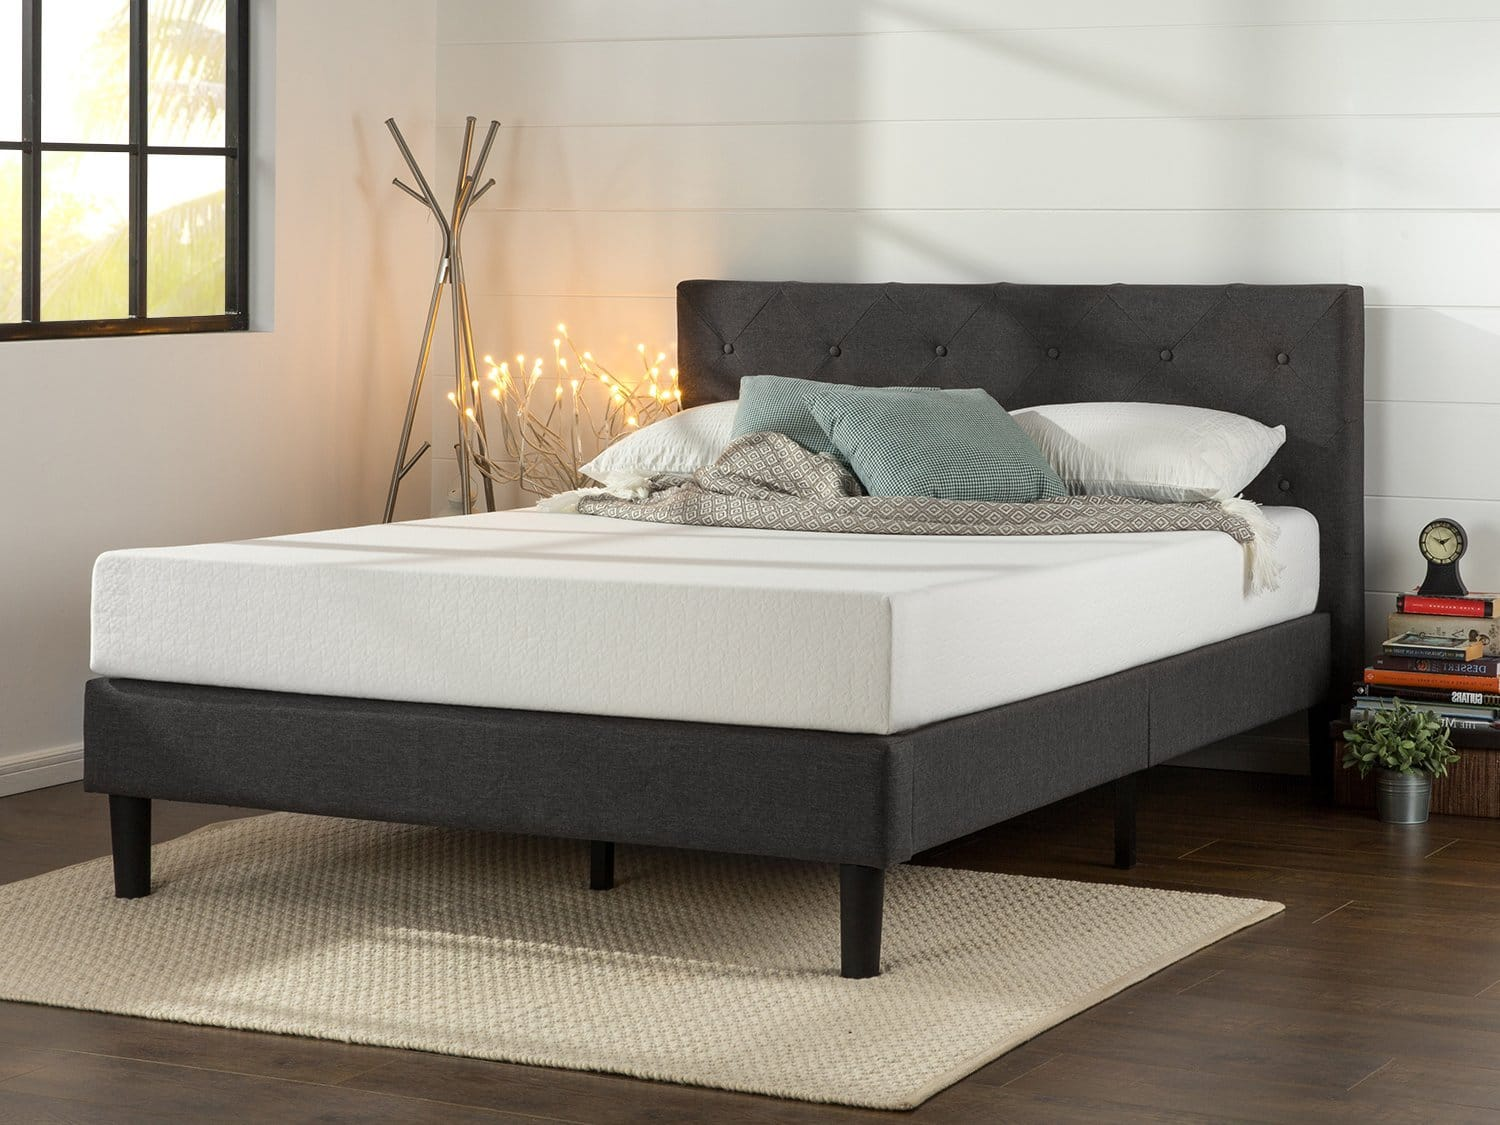 Free King Size Mattress And Box Springs Best 25 King Size Bed Headboard Ideas On Pinterest King